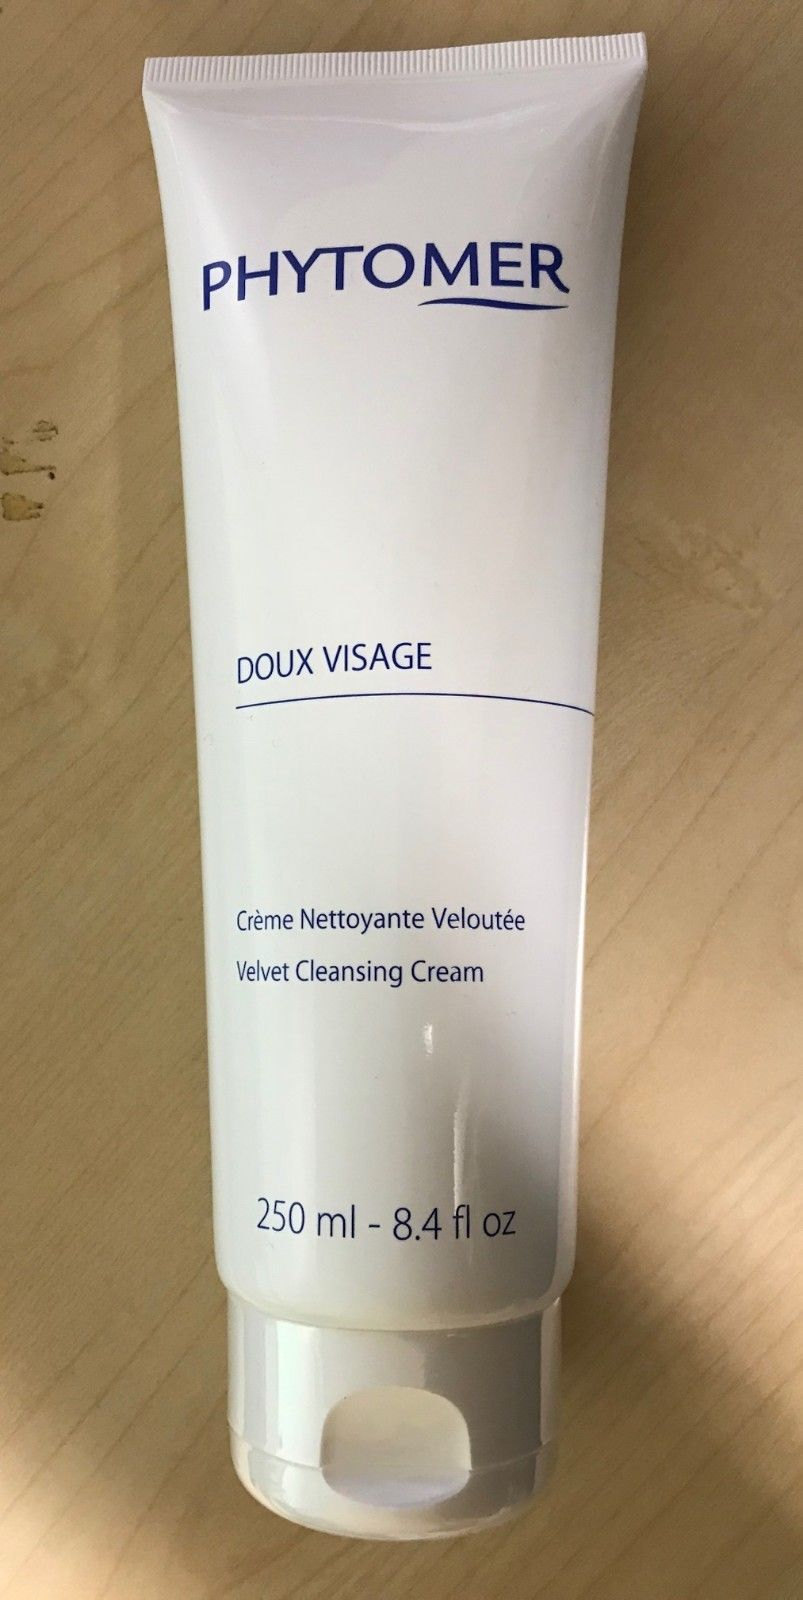 Primary image for Phytomer Doux Visage Velvet Cleansing Cream Salon Size 250ml  New